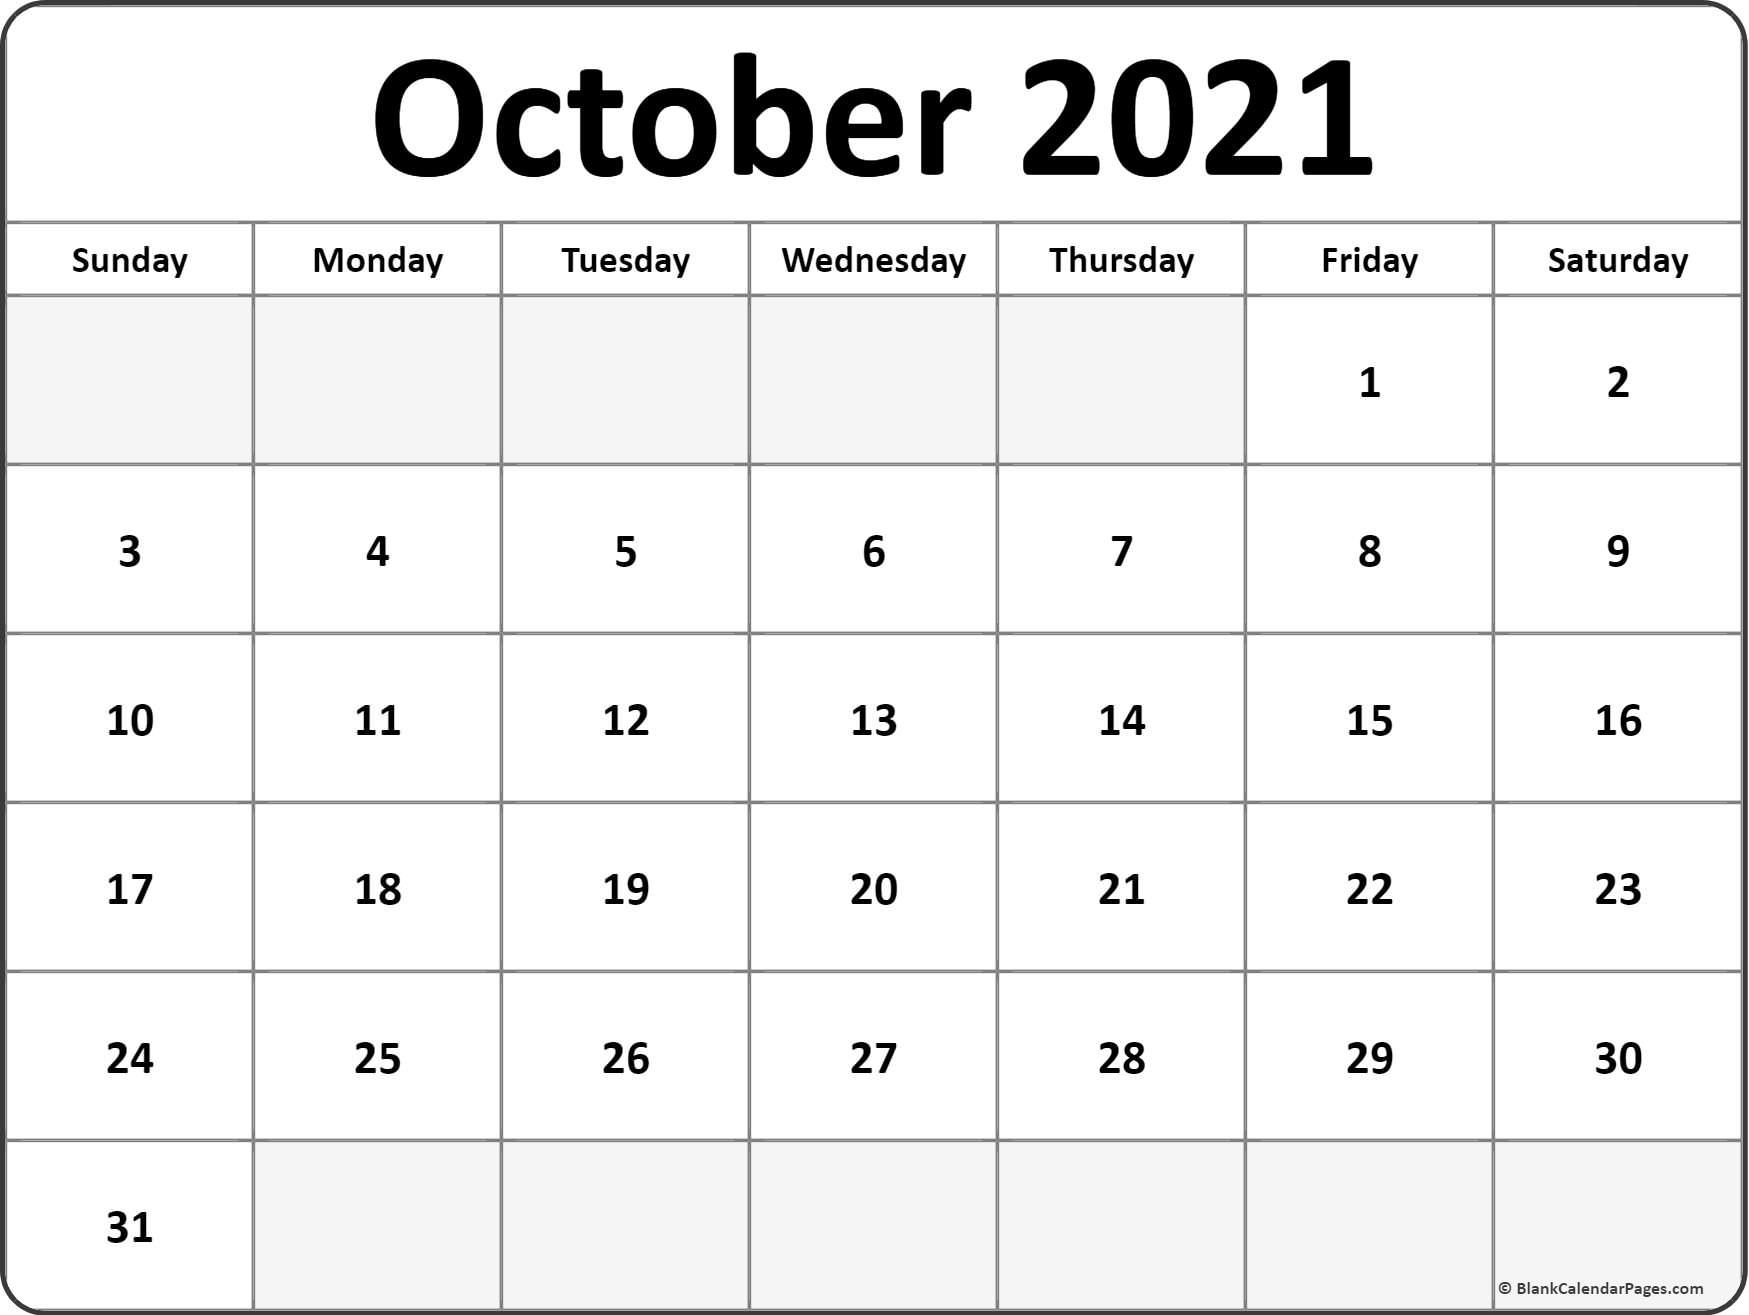 October 2021 monthly calendar printout